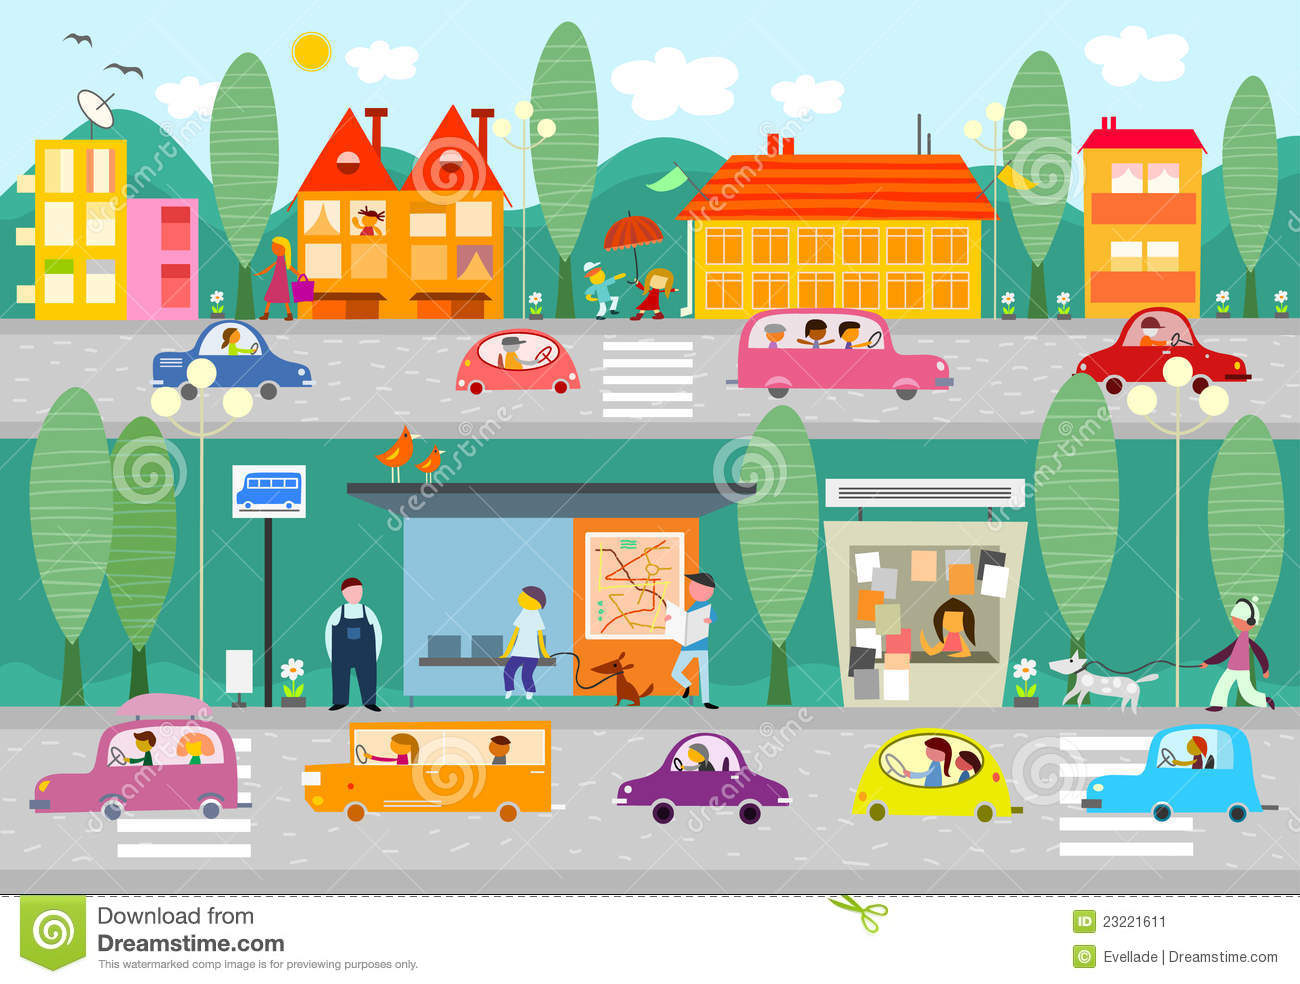 Traffic clipart city community (16+) city clipart City Clipart